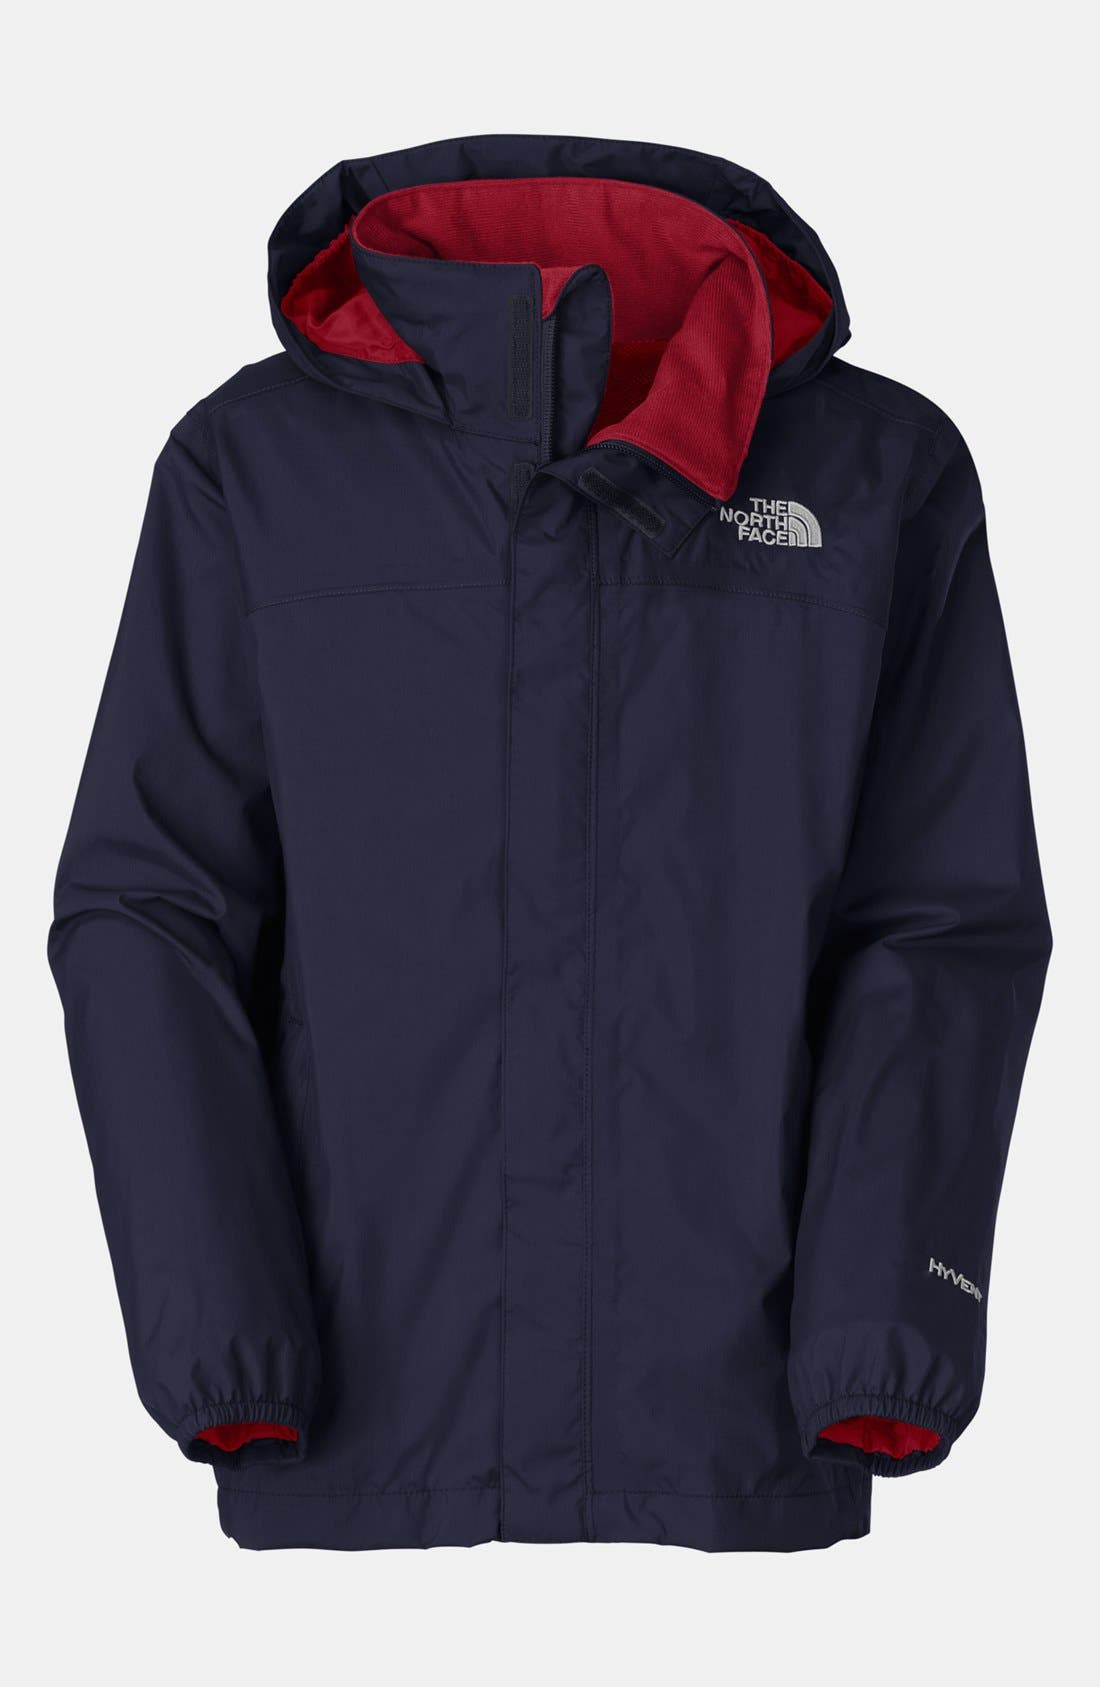 Alternate Image 1 Selected - The North Face 'Resolve' Jacket (Little Boys)